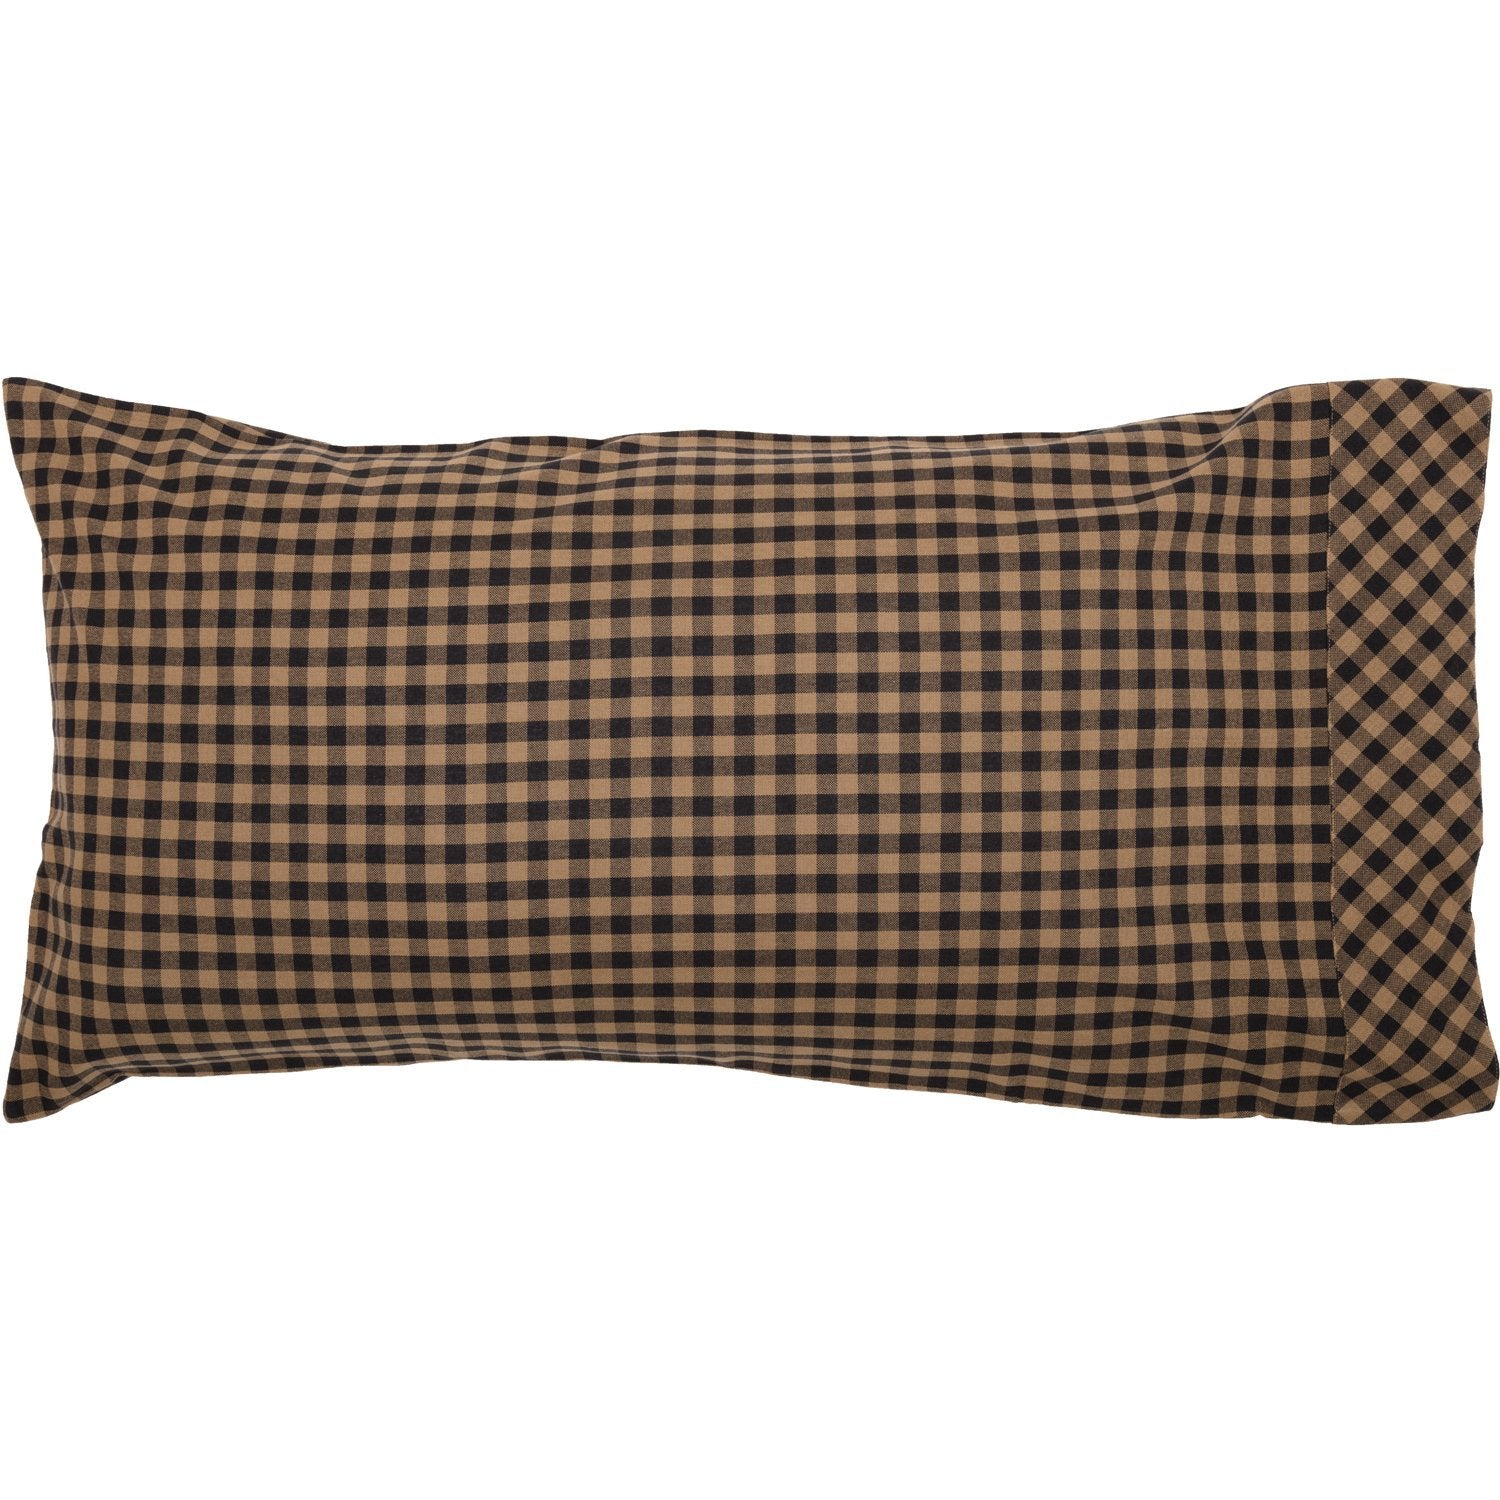 Black Check Pillow Case Set of 2.